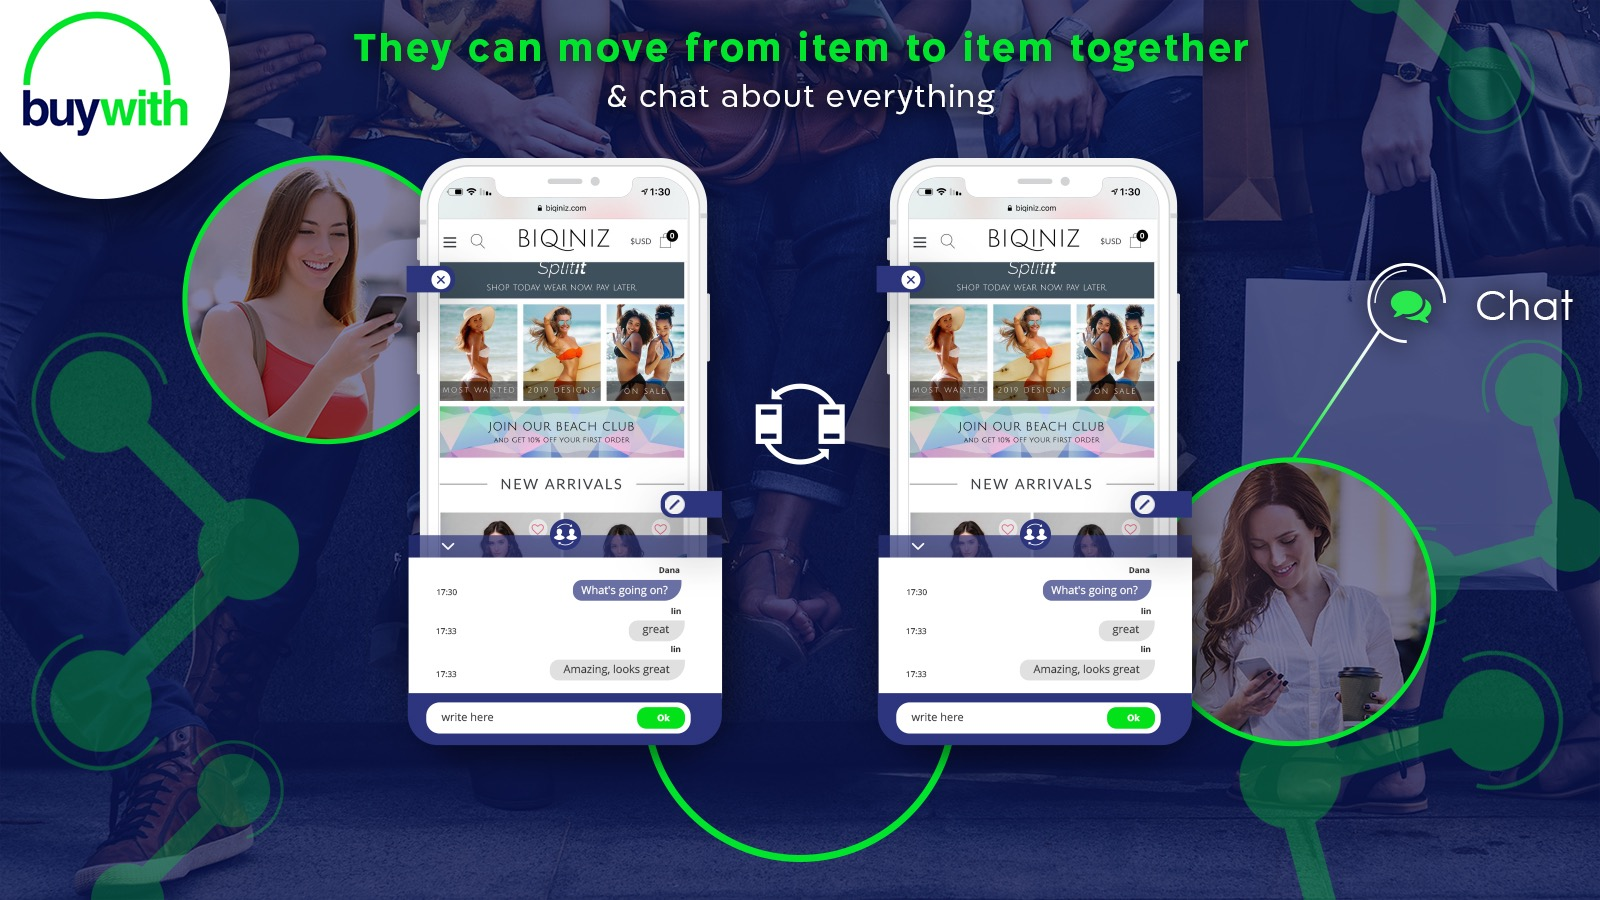 Share with friends and chat, social shopping, get sales